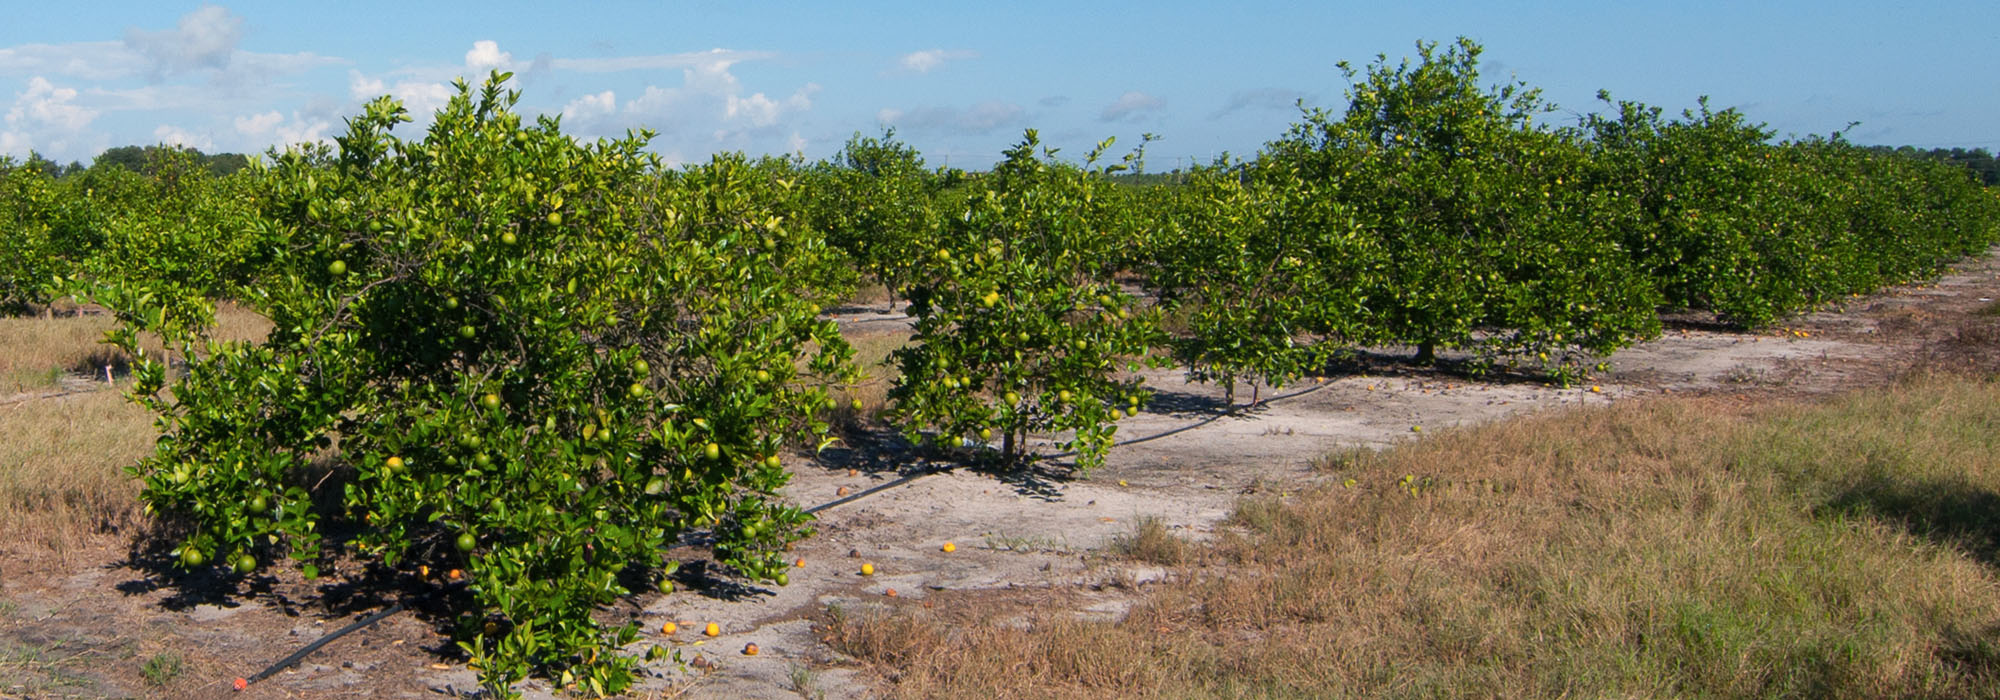 CR 672 Income Producing Citrus Grove 36 Acres in Lithia, FL